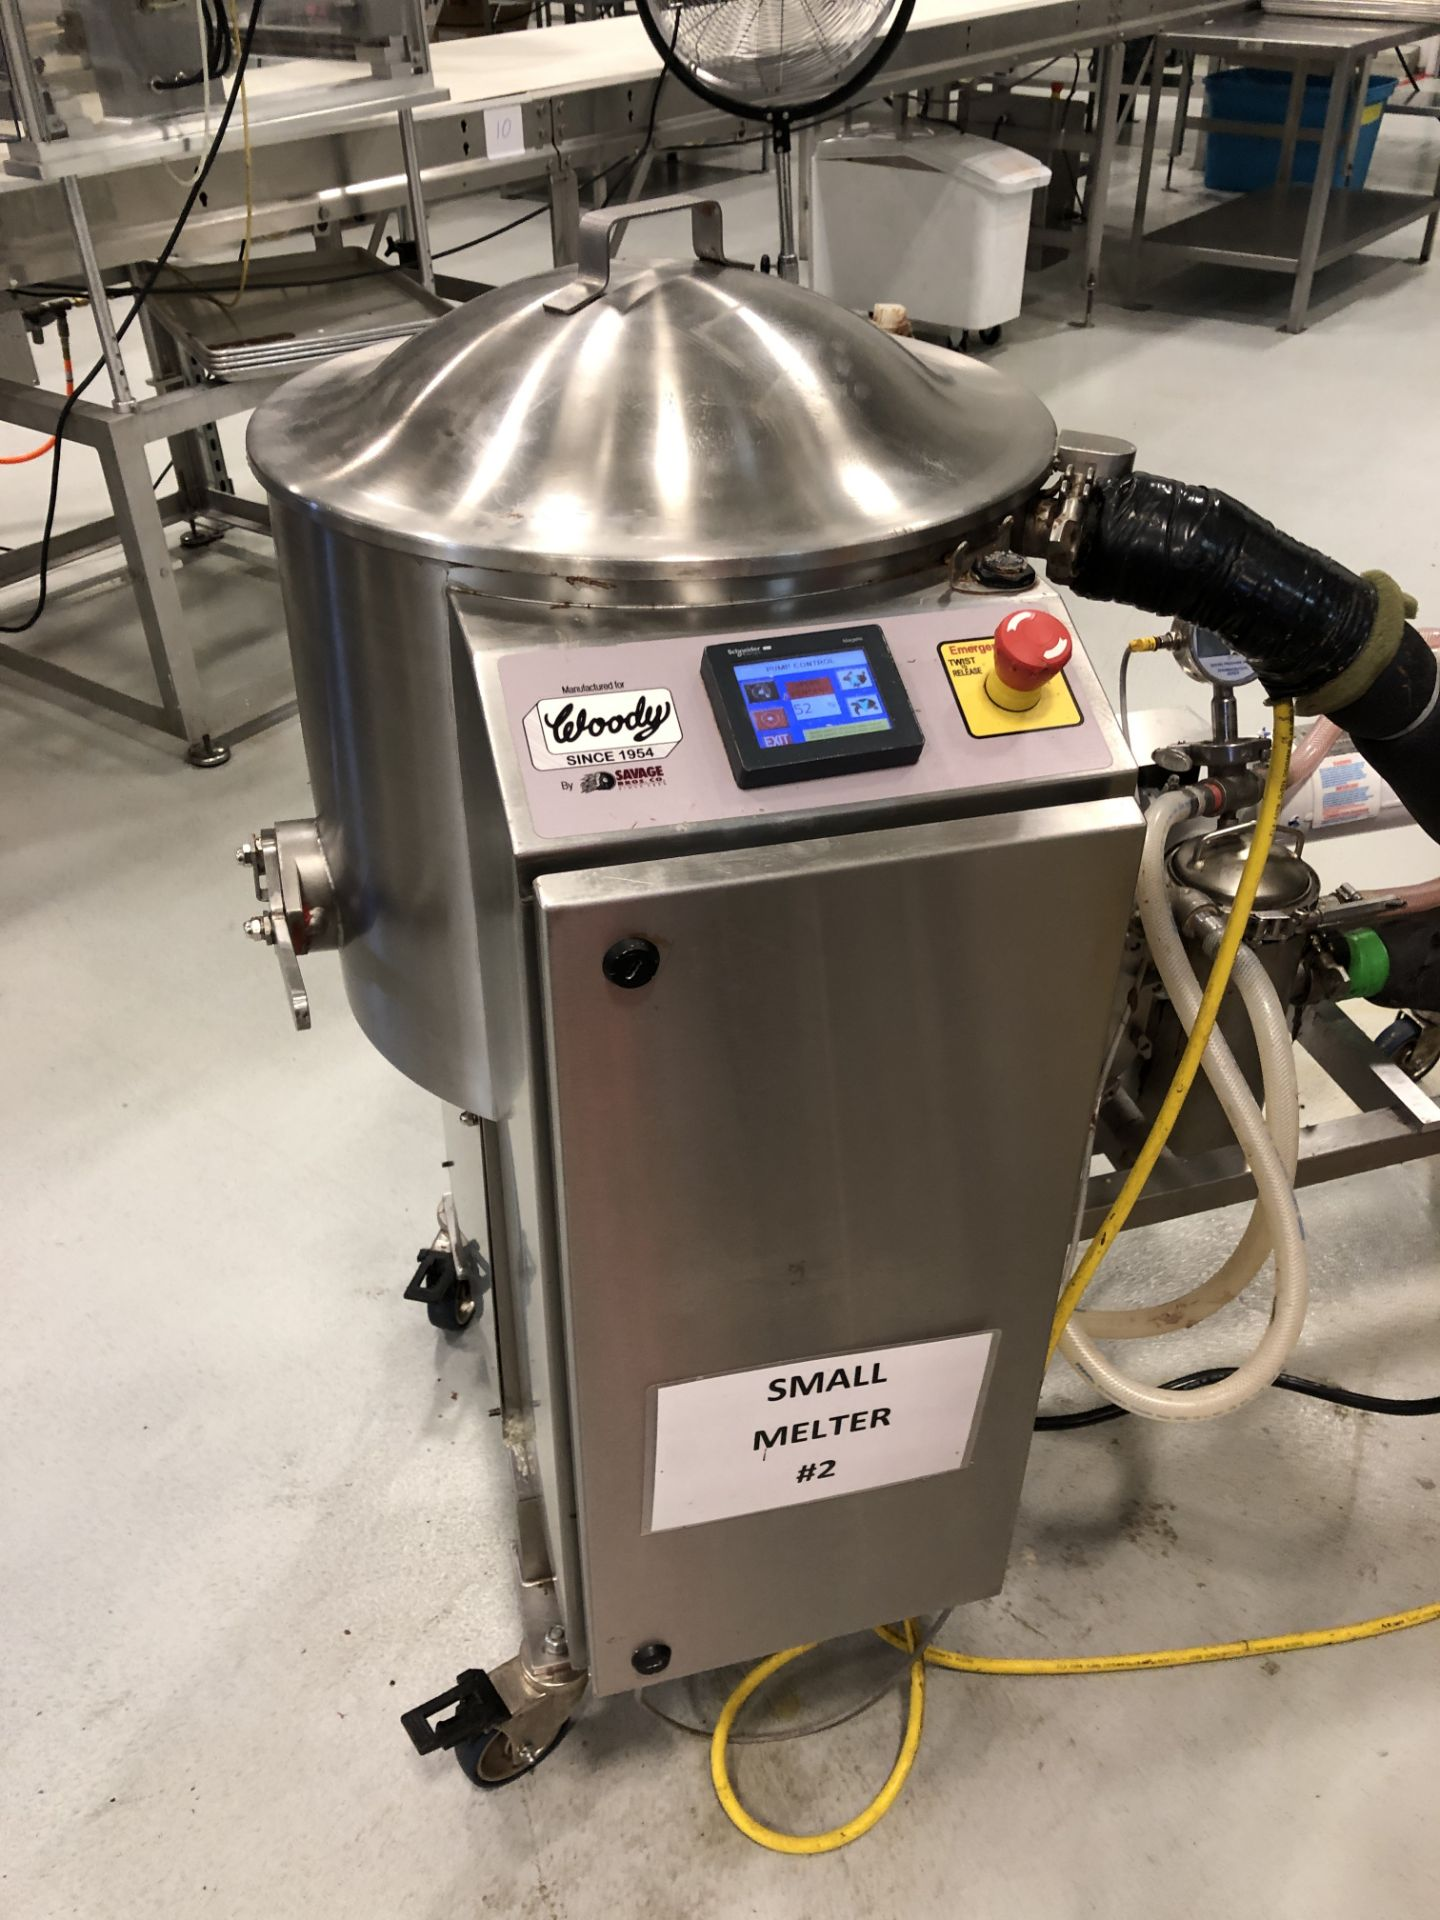 Lot 5 - Savage/Woody 125 lb Stainless Steel Chocolate Melter with Touchscreen controls, jacketed and